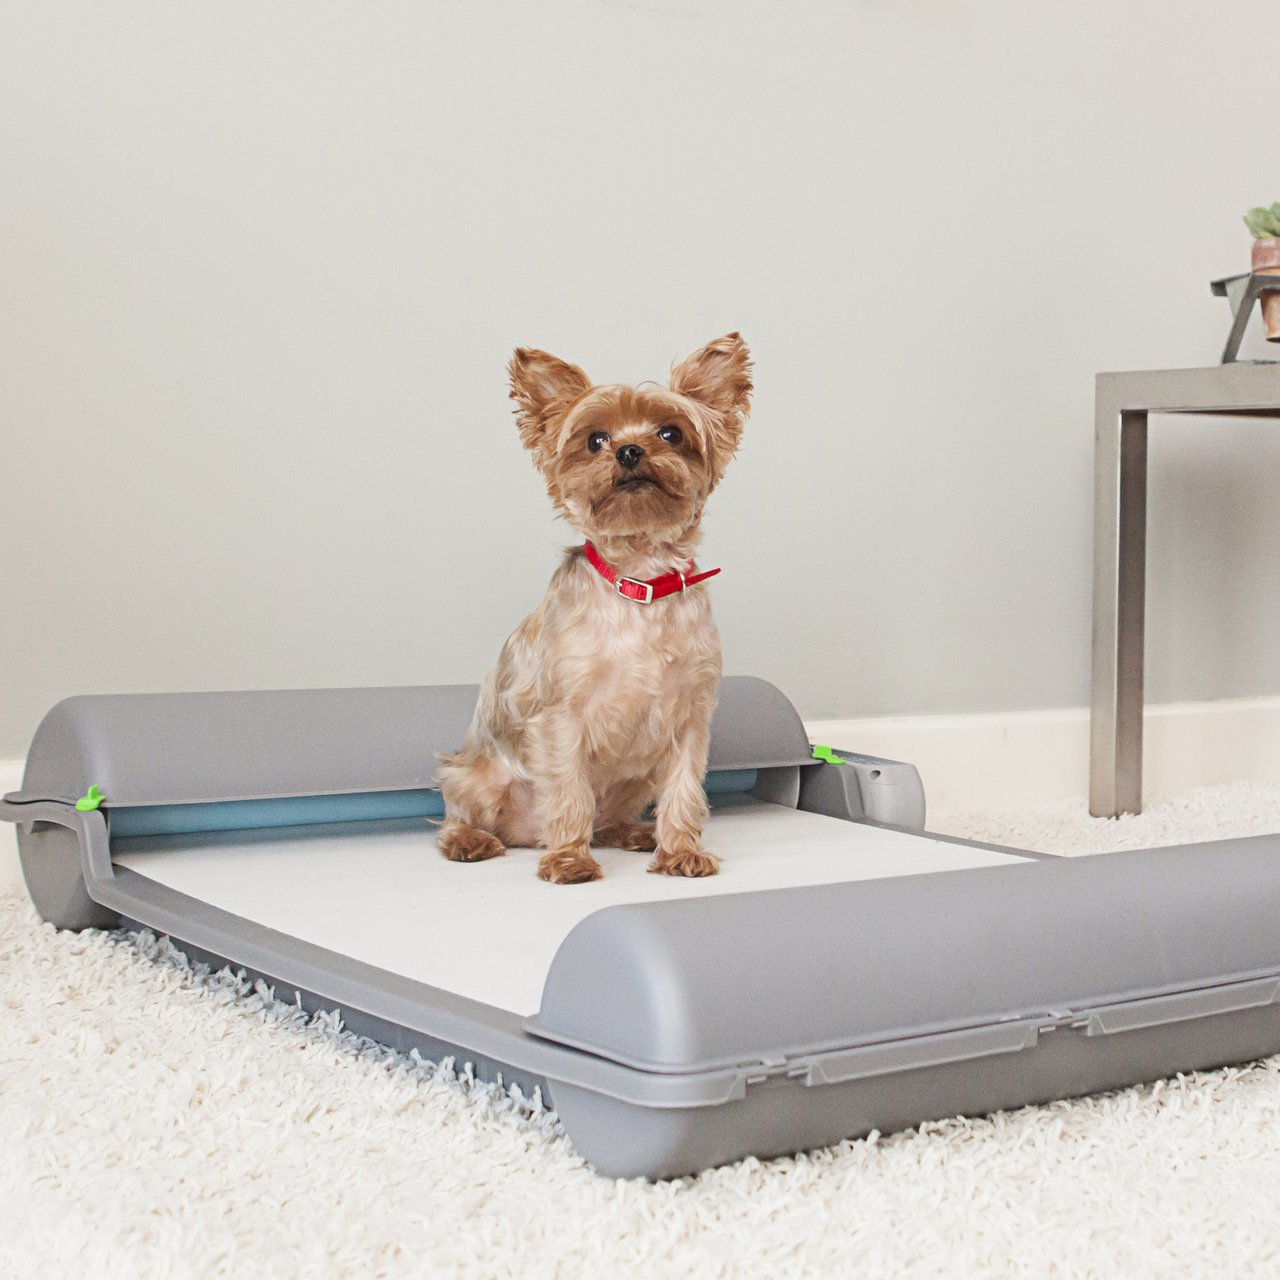 Brilliant Pad Self-Cleaning Automatic Indoor Dog Potty